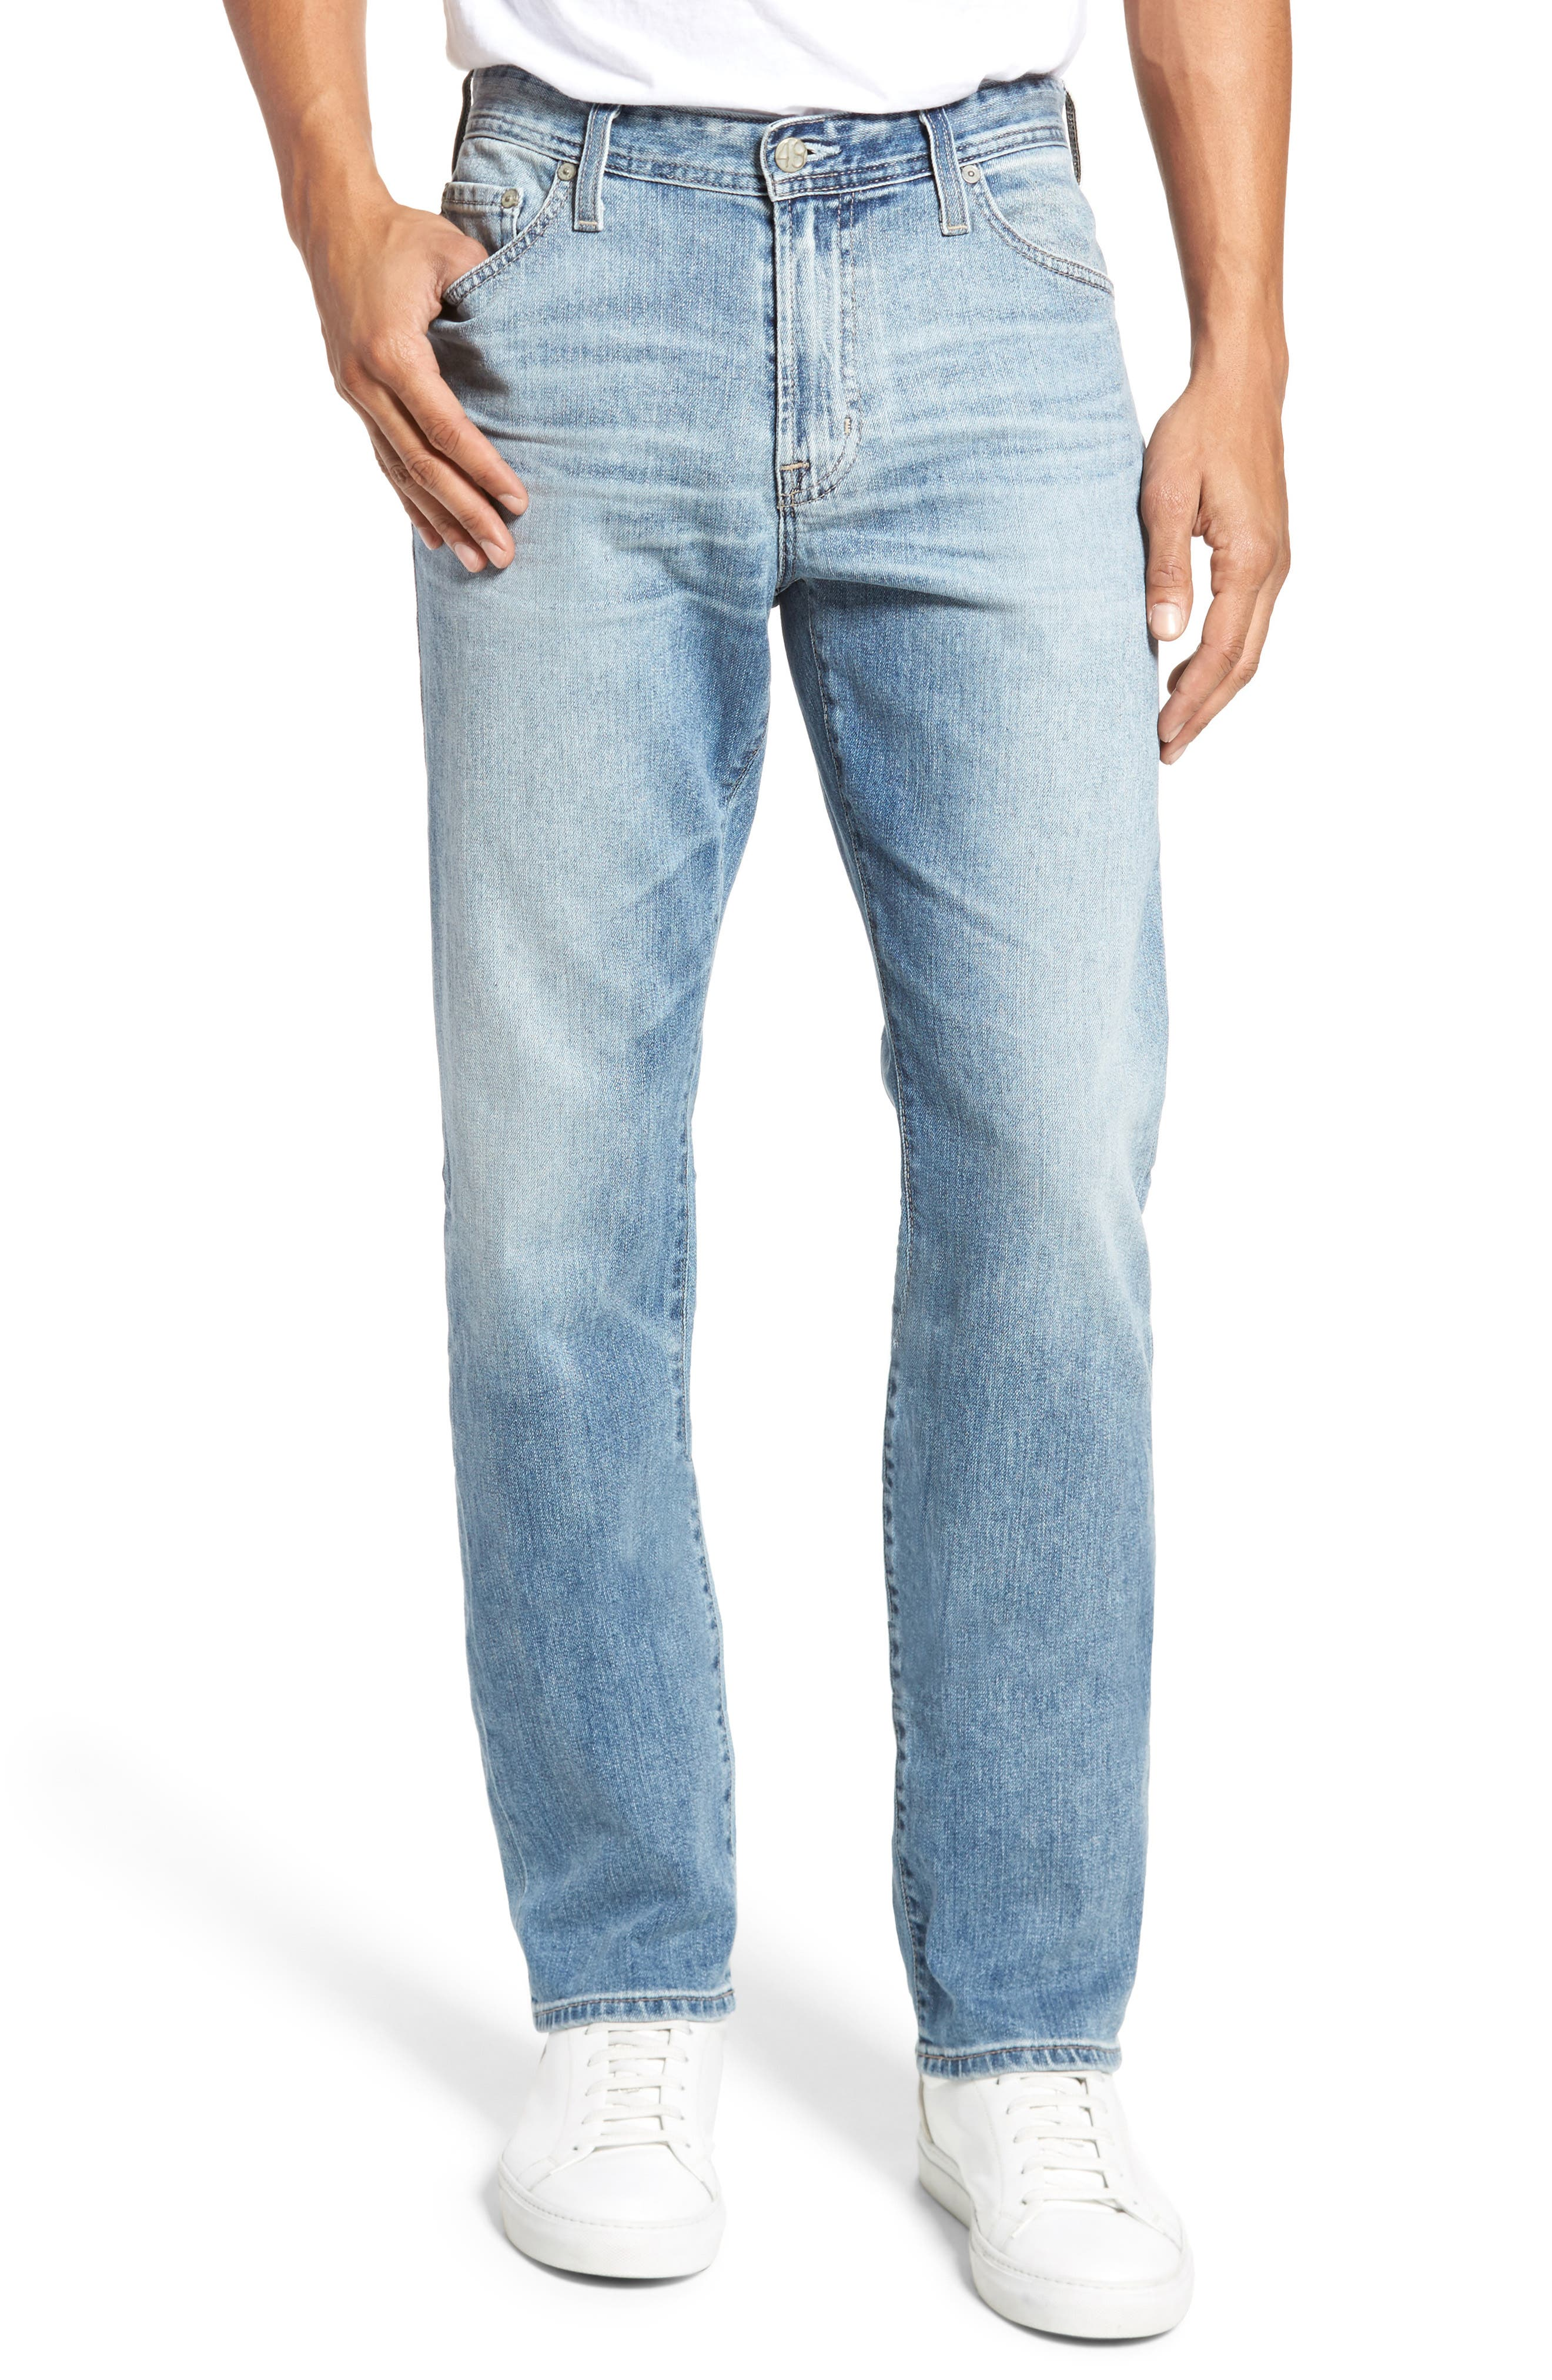 Everett Slim Straight Fit Jeans,                         Main,                         color, Bright Sky